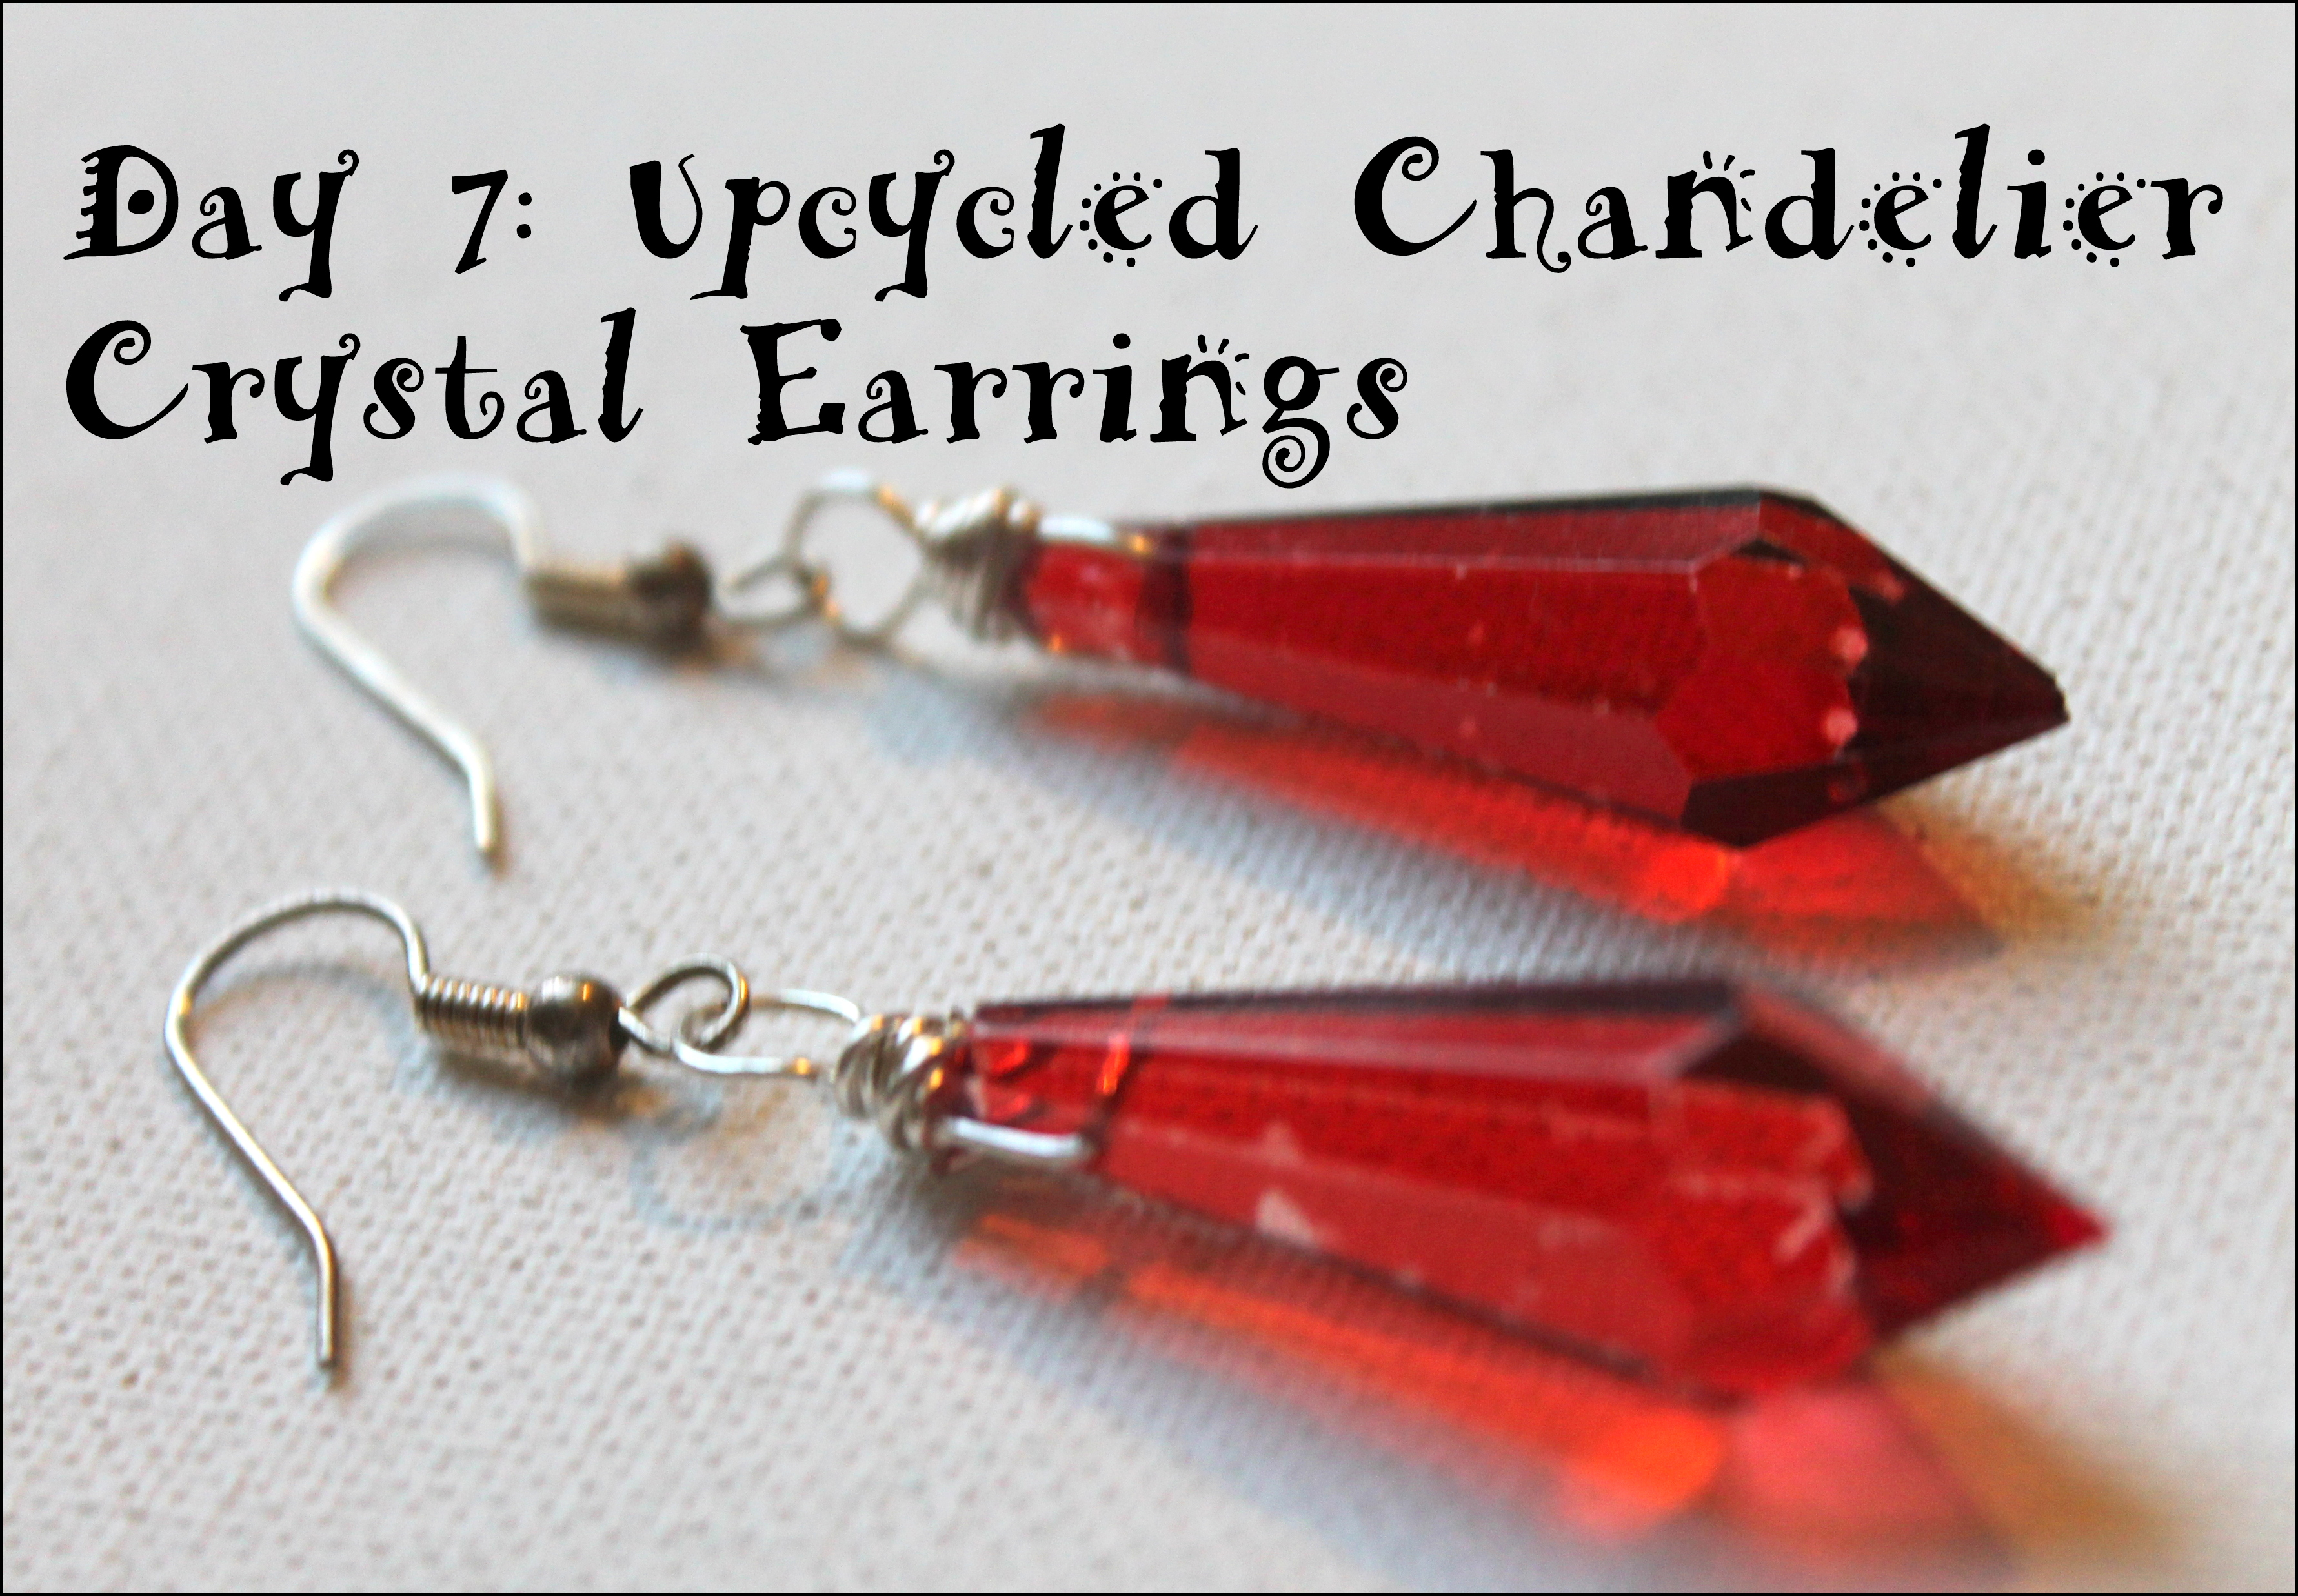 Wire wrapping for beginners day 7 upcycled chandelier crystal chandelier crystal earrings arubaitofo Gallery